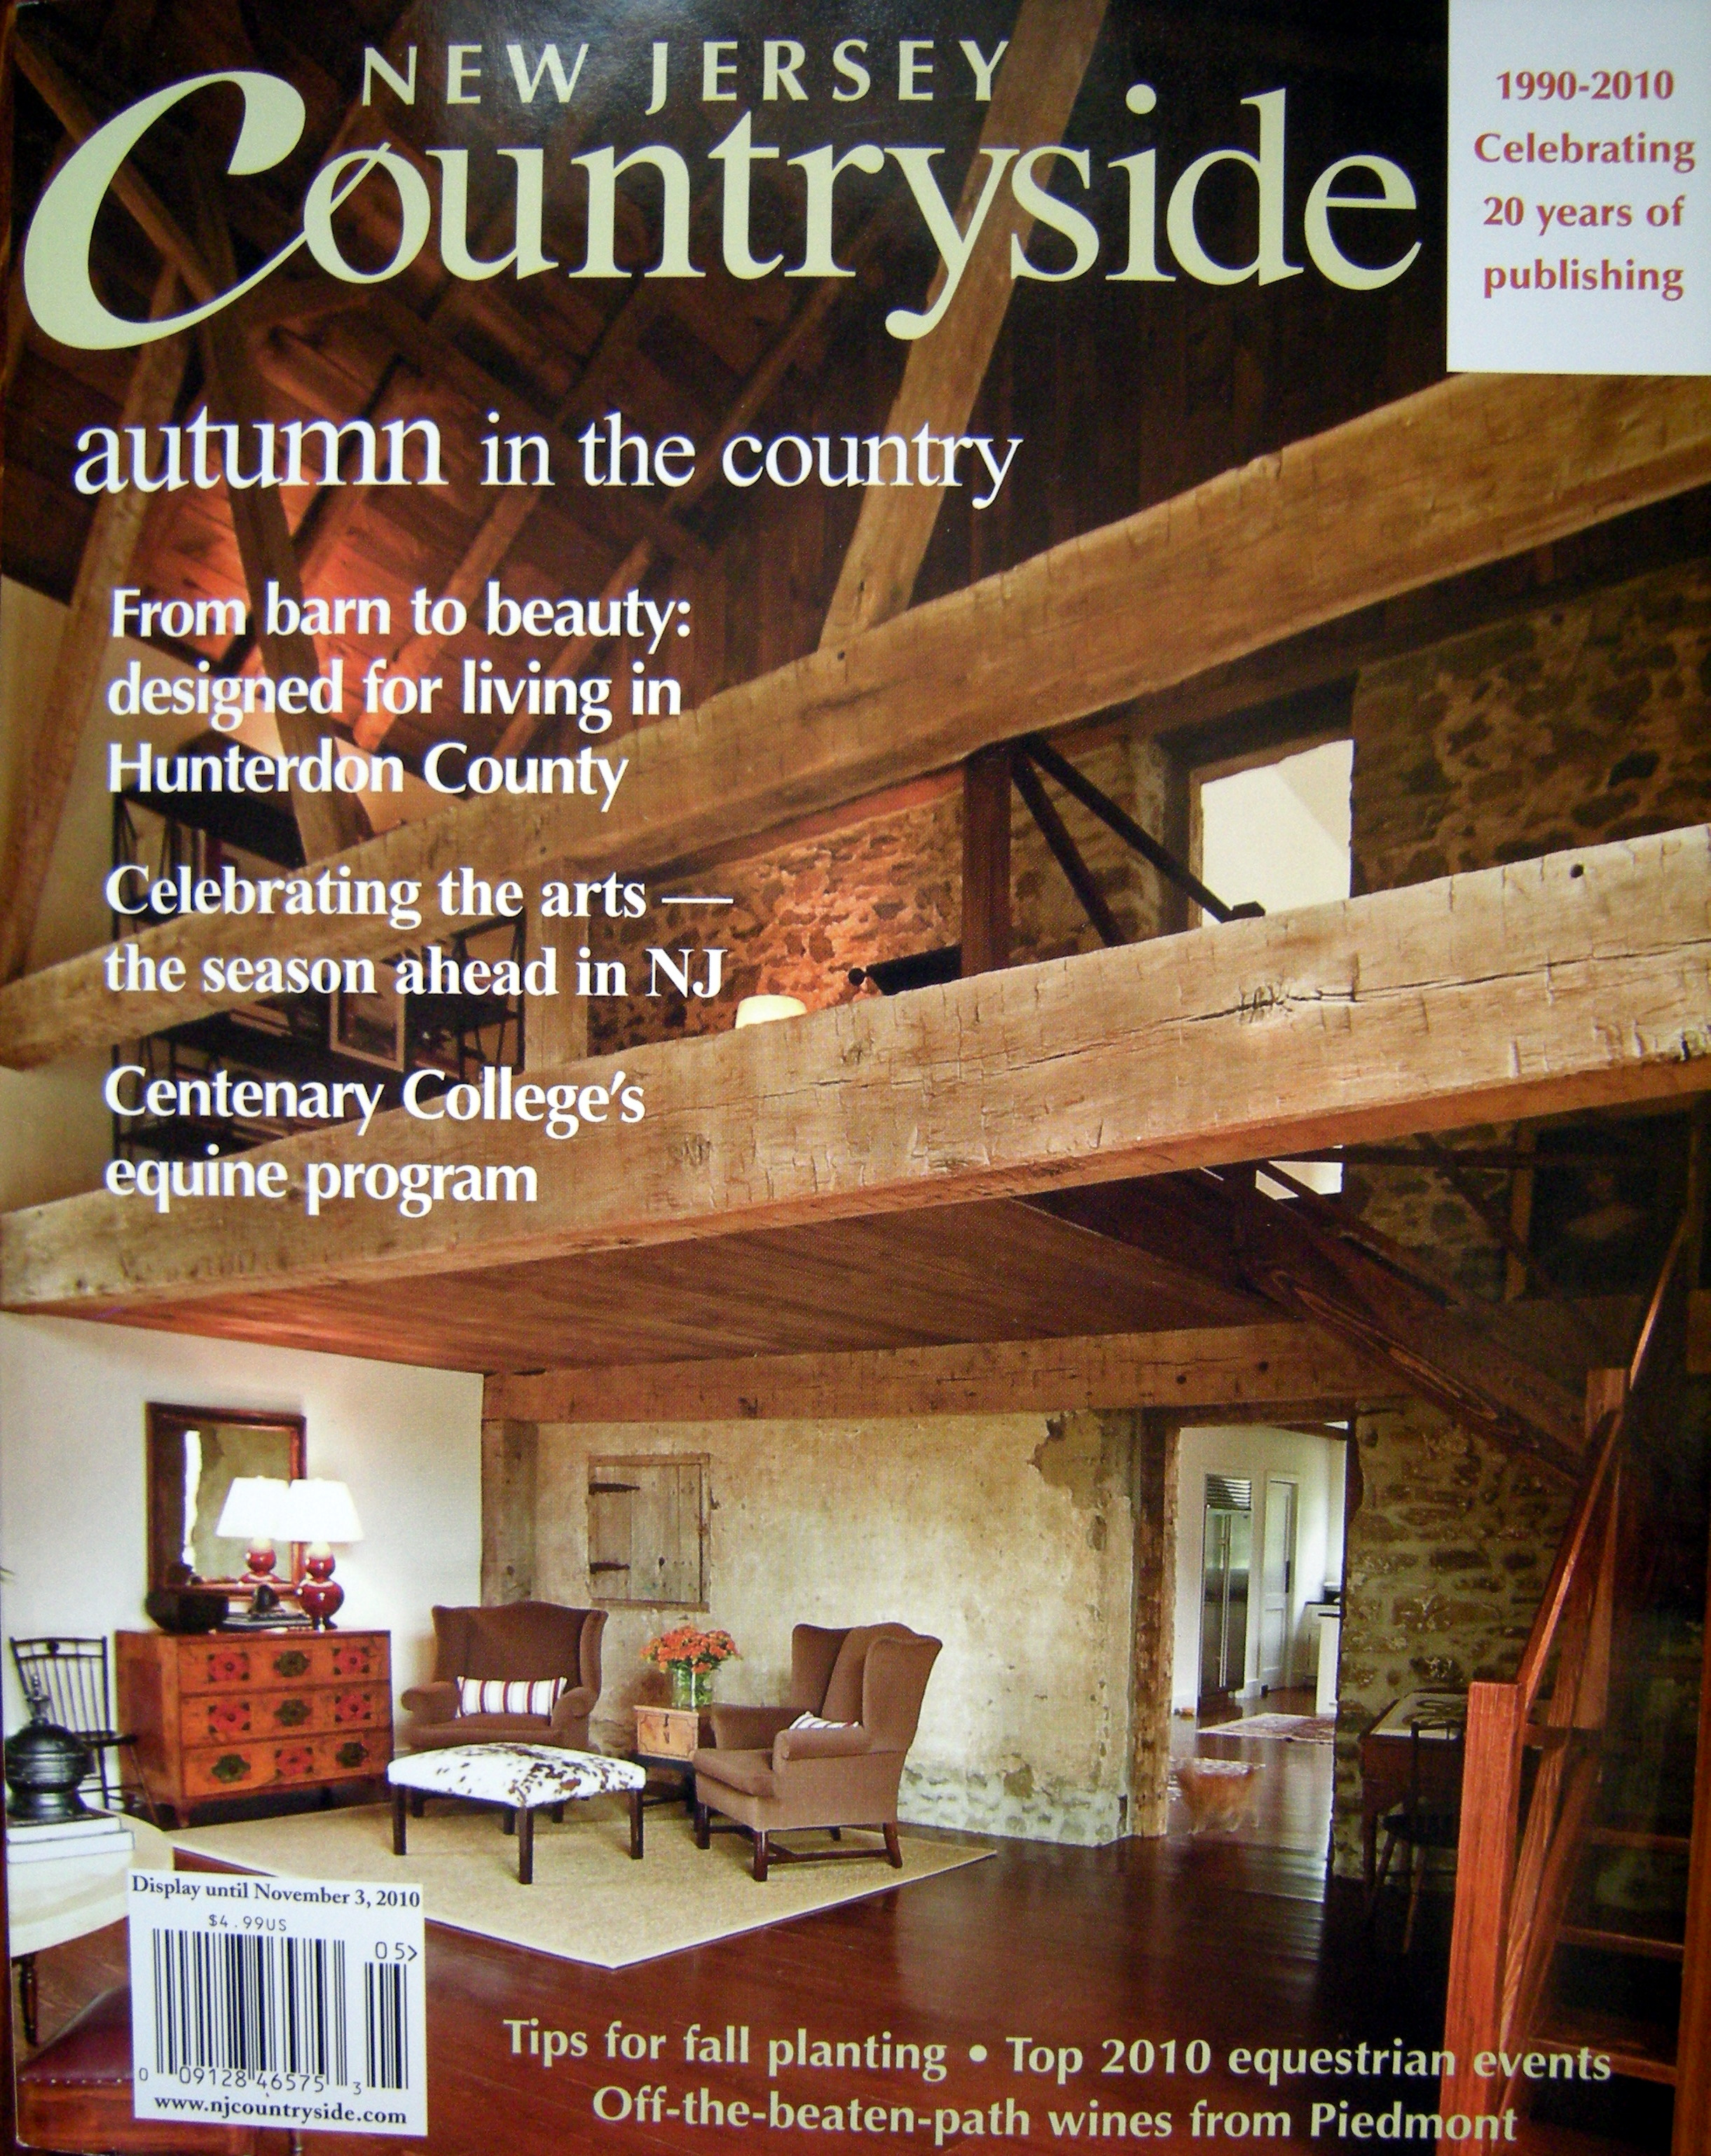 Many Thanks And All Our Appreciation To Allene Stanton Fay The Publisher Editor Of New Jersey Countryside Magazine On Selecting Barn As